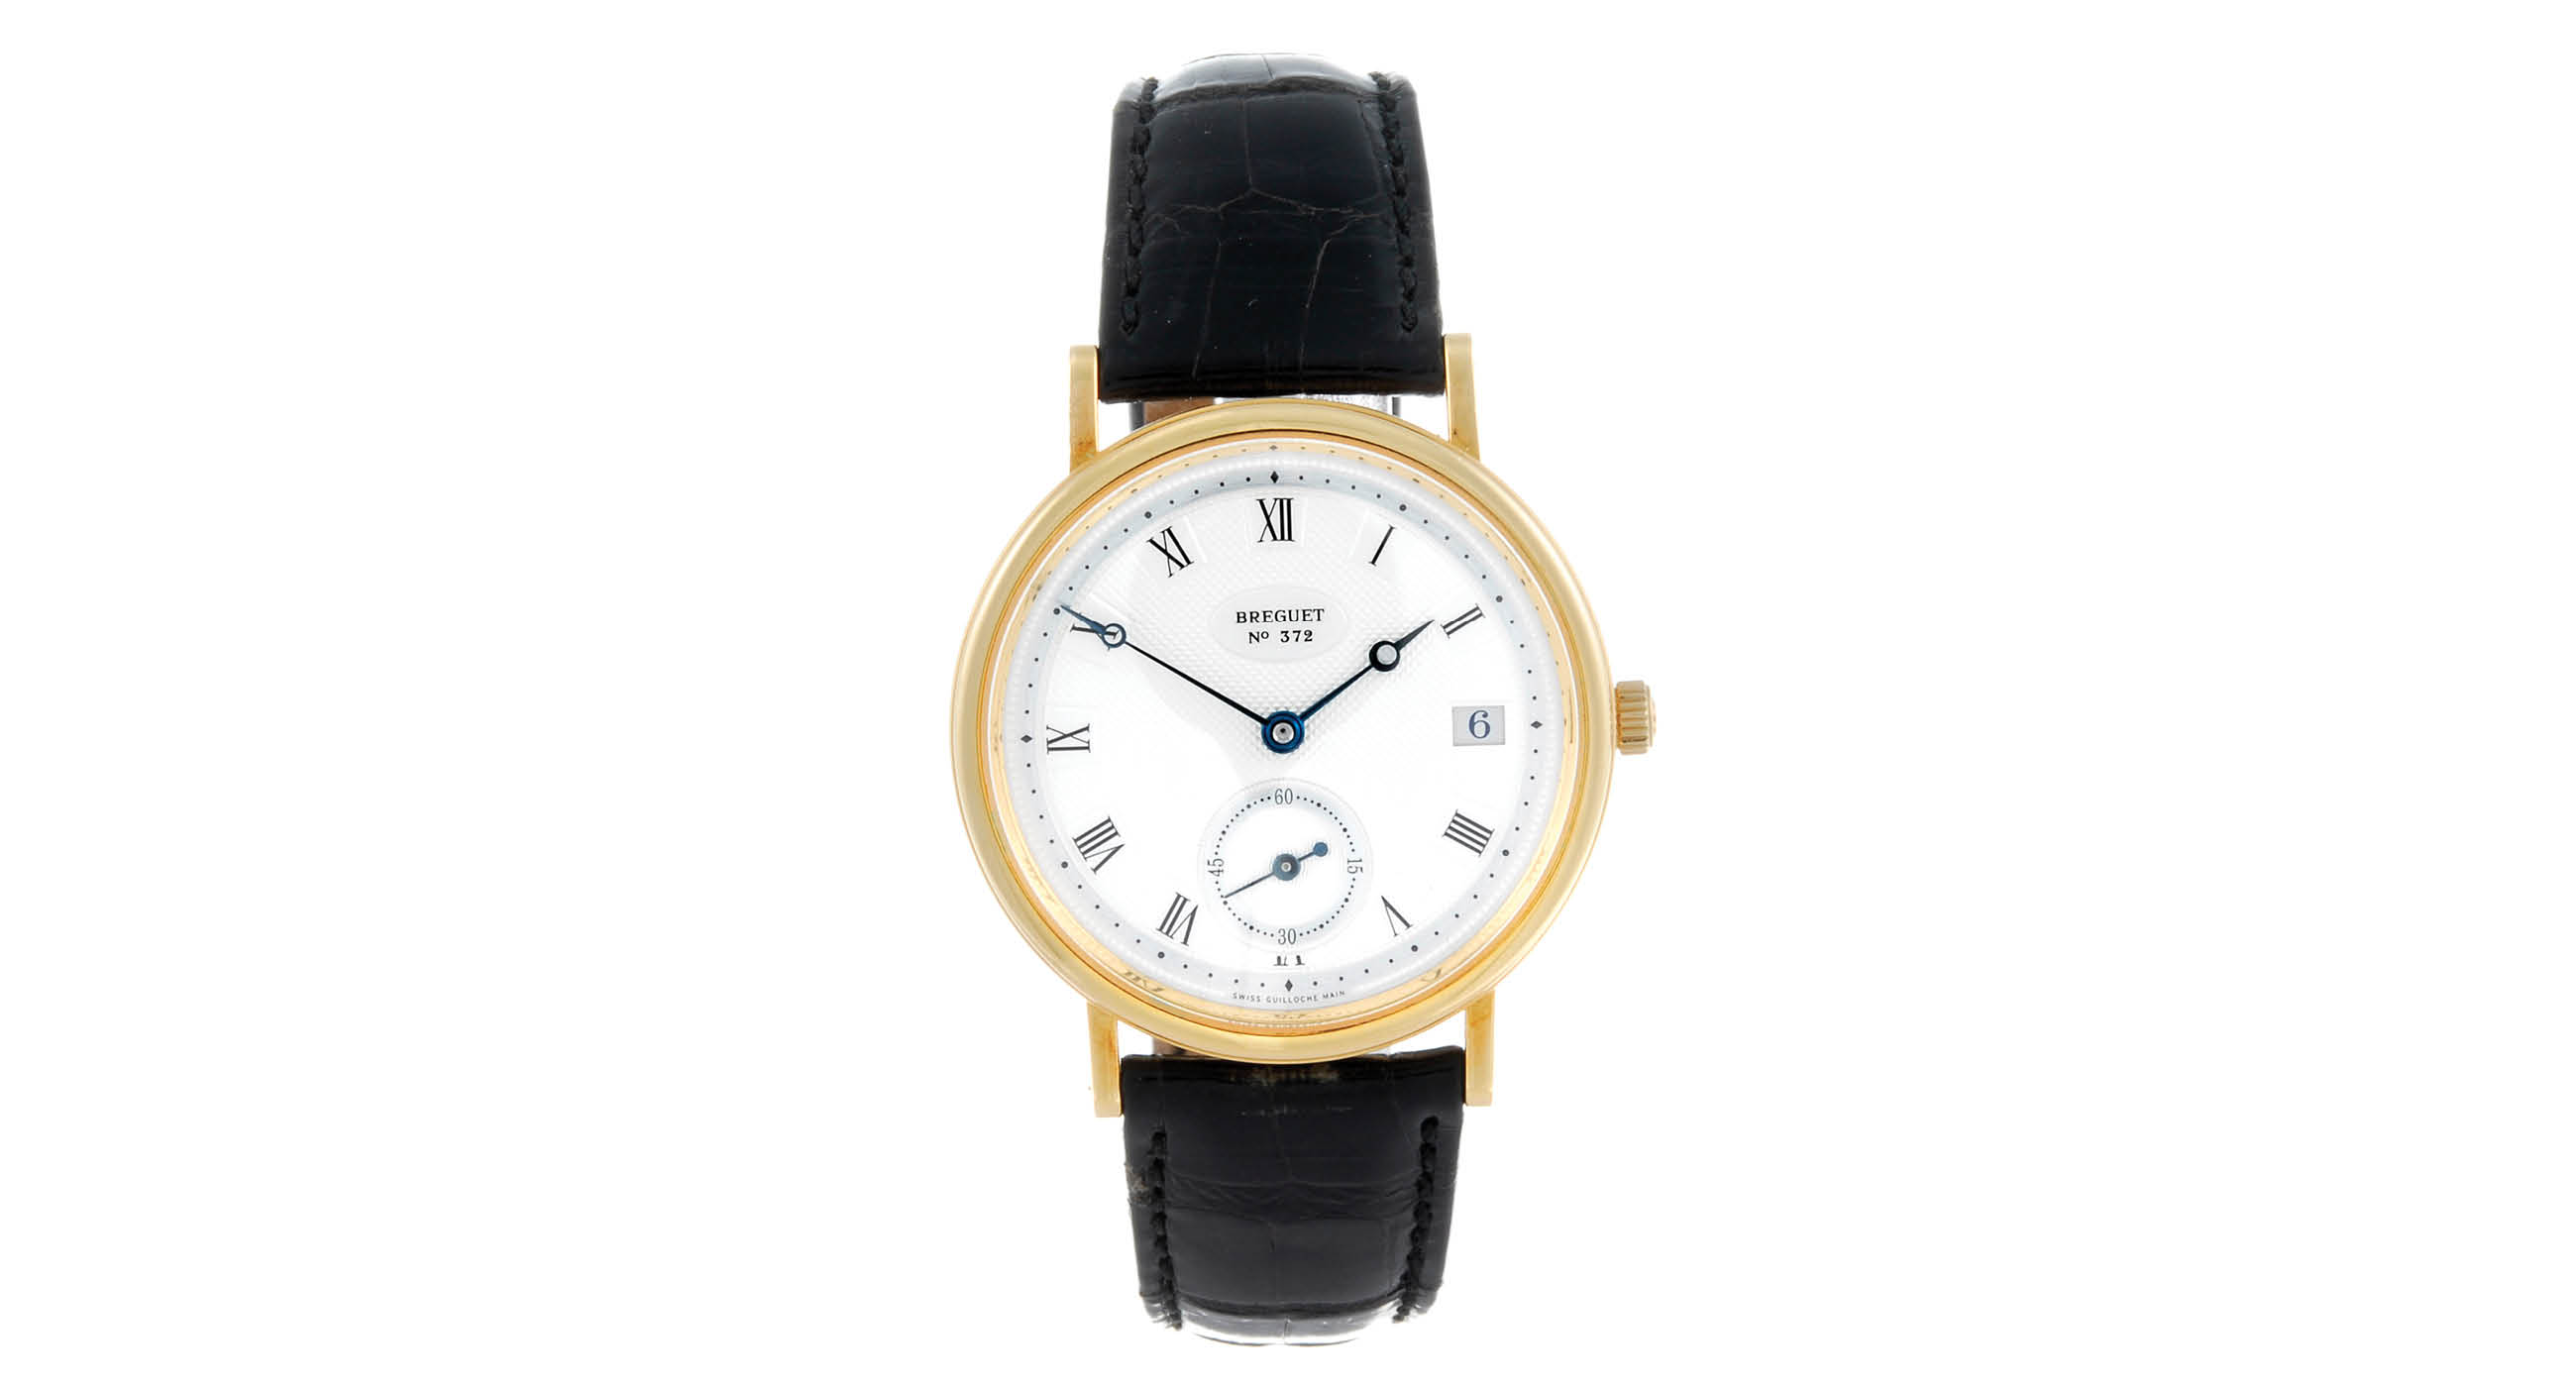 Introducing The Elegant And Typical Breguet Classique Replica Watch